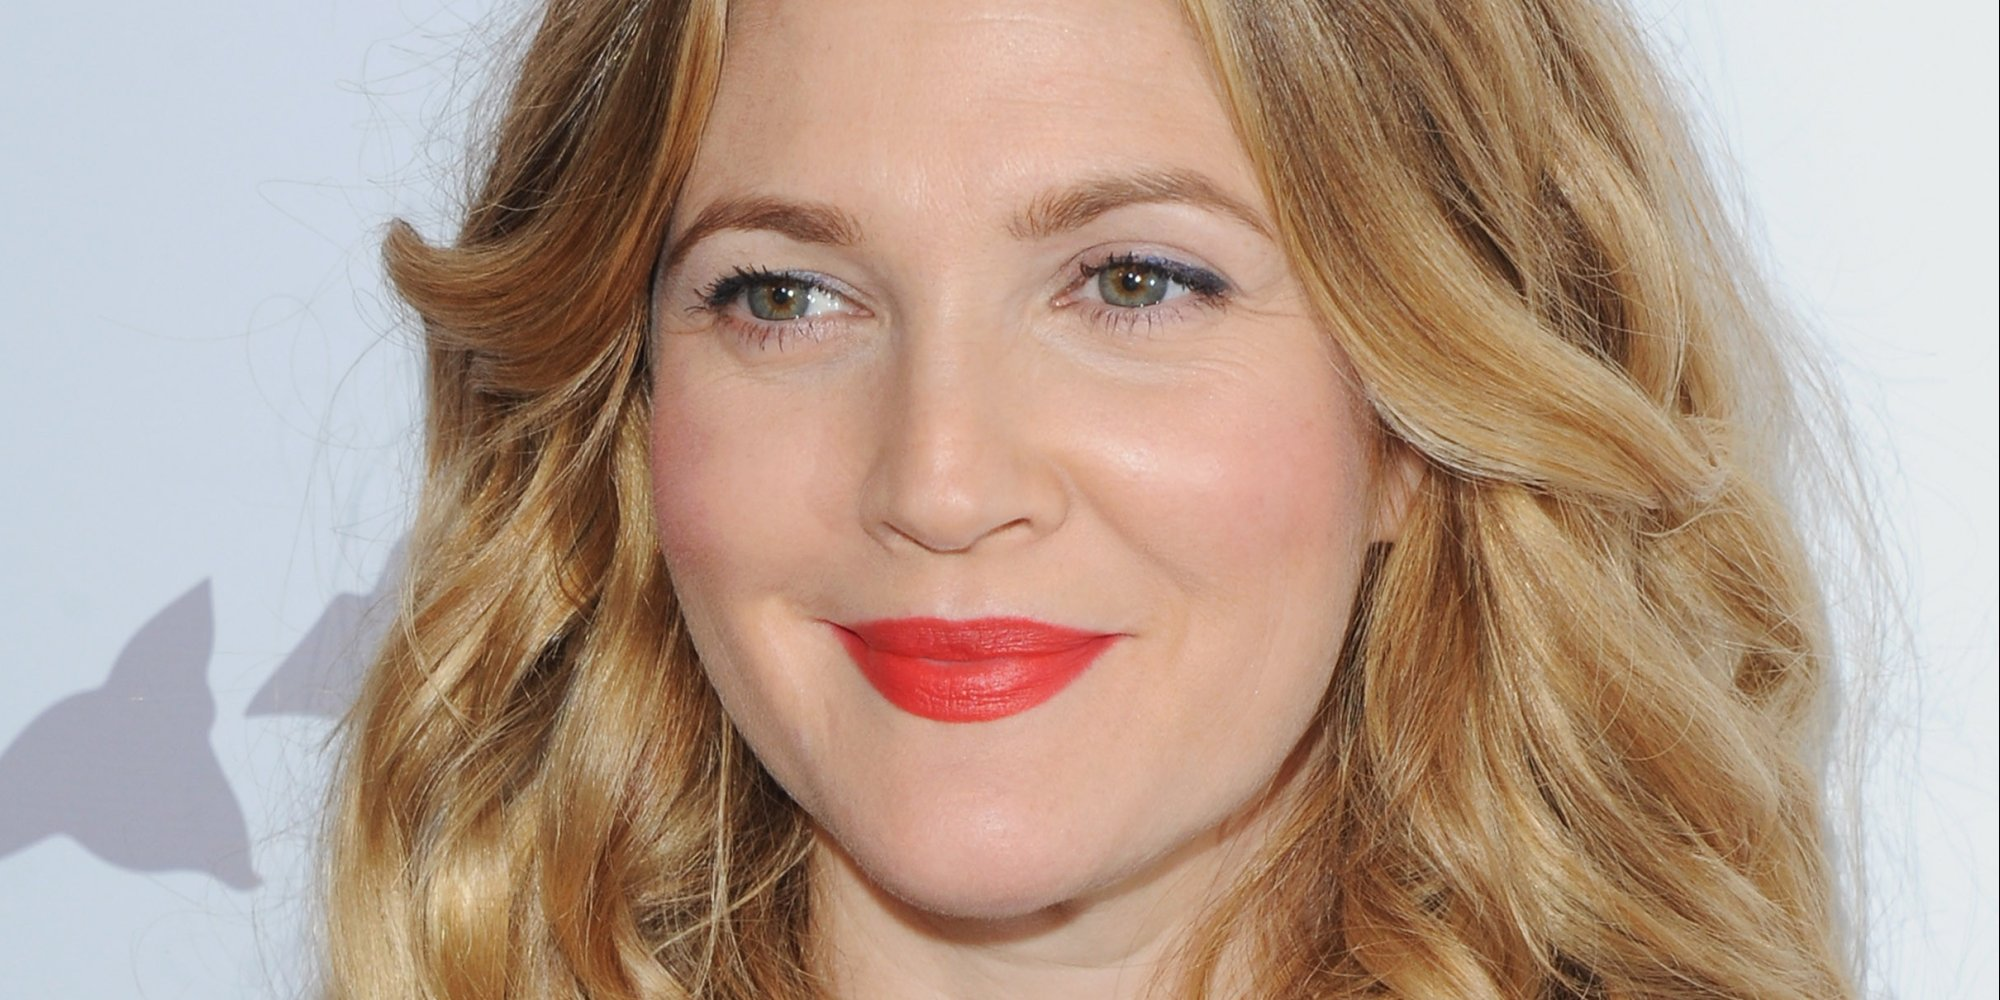 Drew Barrymore Celebrates Her 40th Birthday By Sharing No-Makeup Selfie - o-DREW-BARRYMORE-facebook